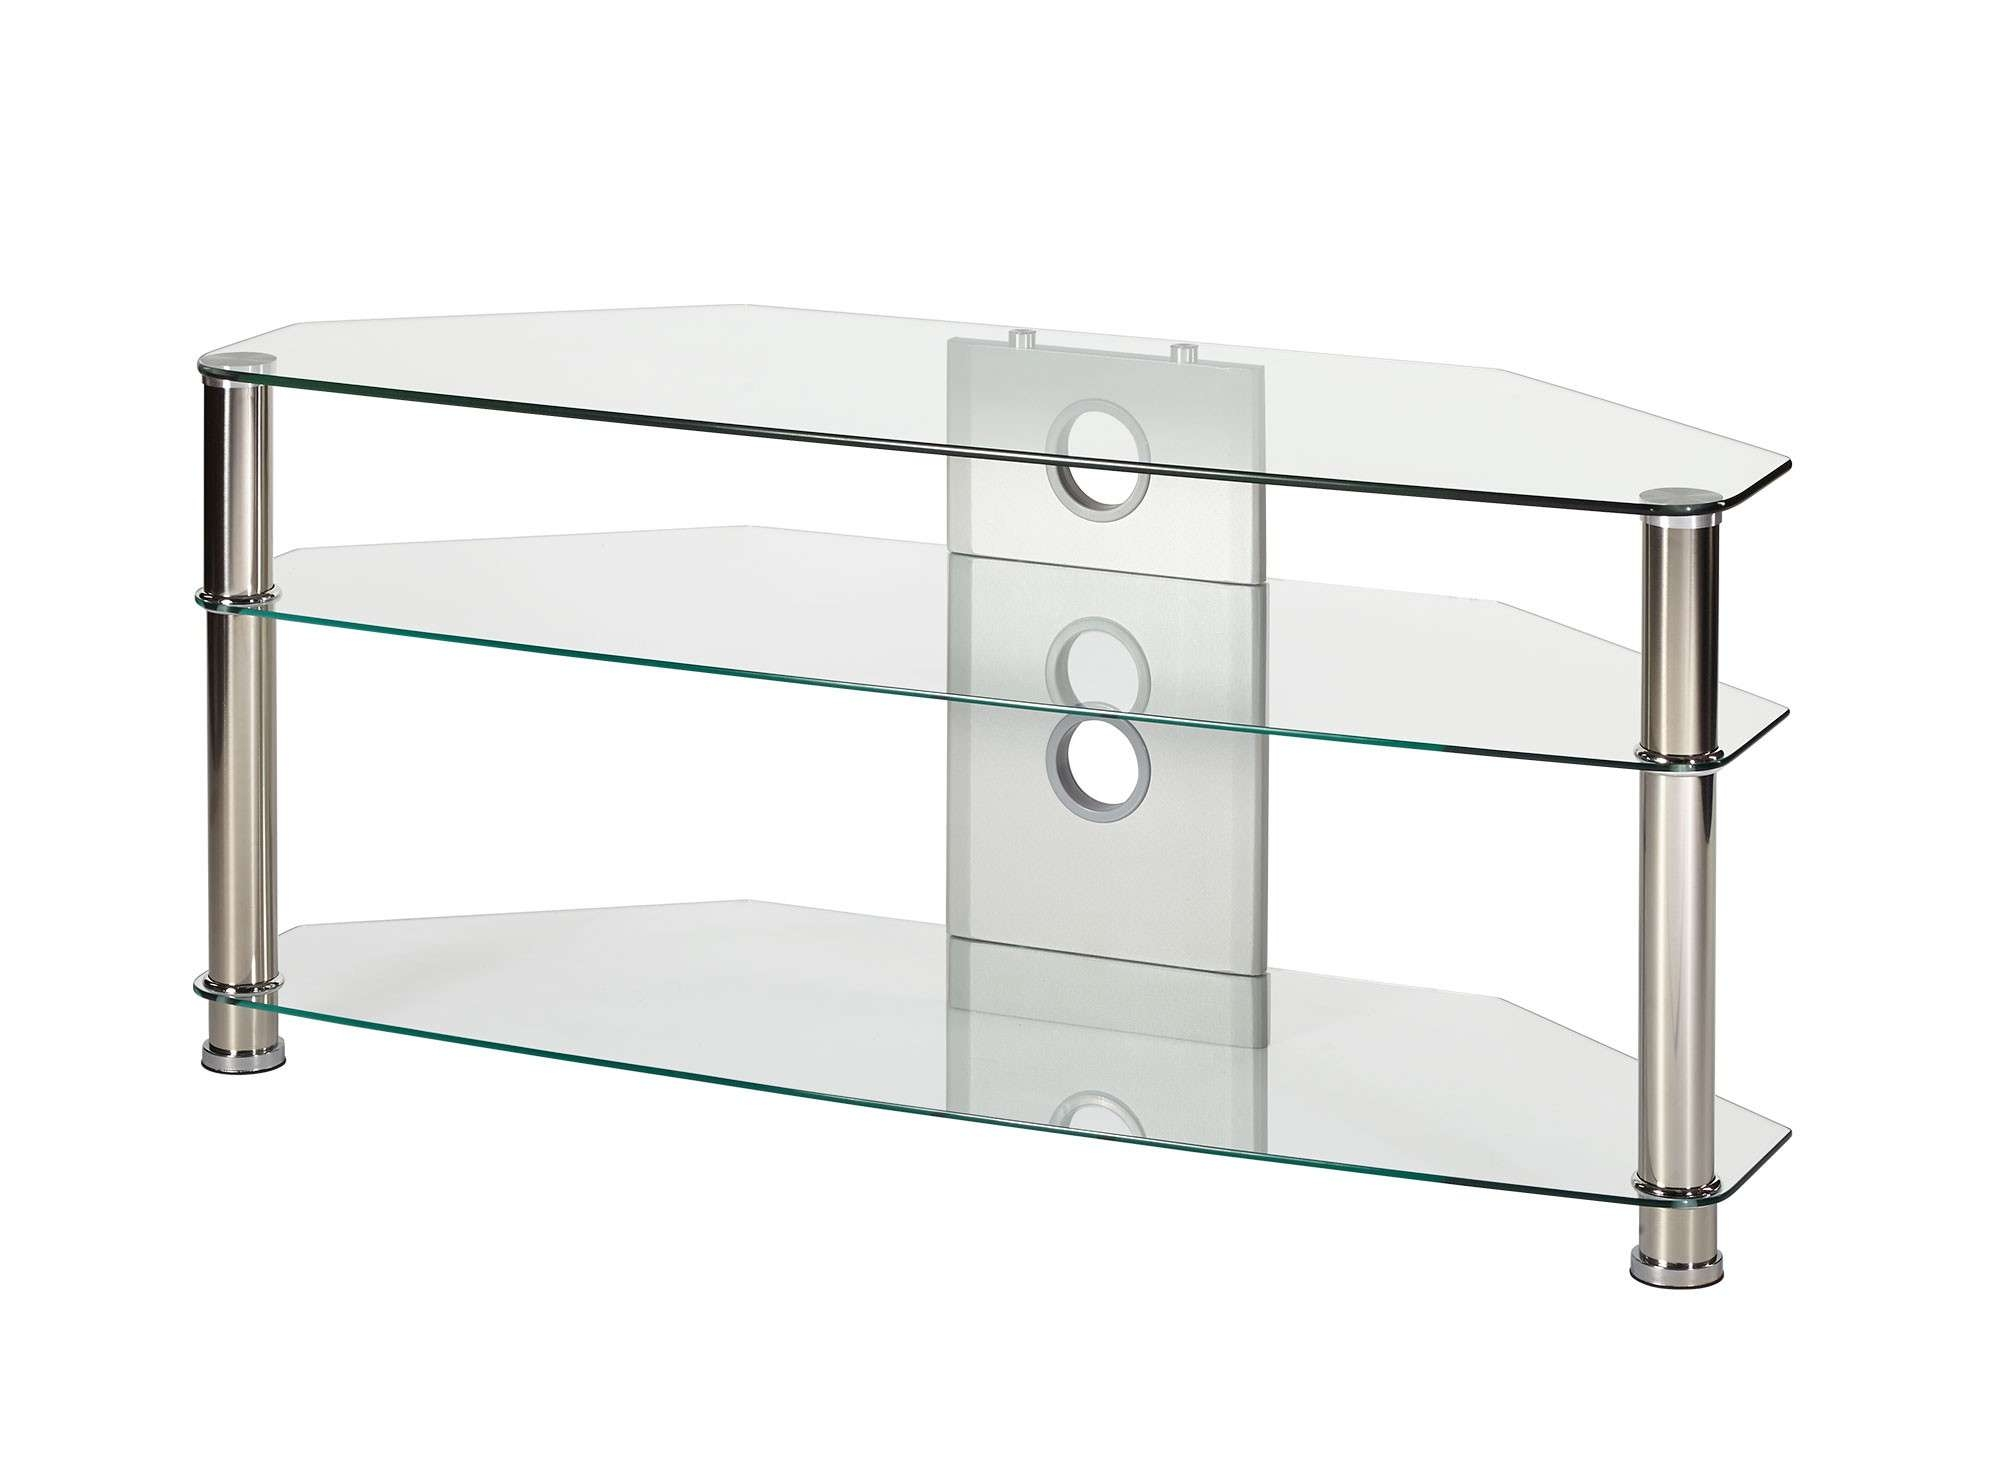 Jet Mmt Cl1150 Clear Glass Tv Stand Stands For Inch Large Corner With Clear Glass Tv Stands (View 6 of 15)